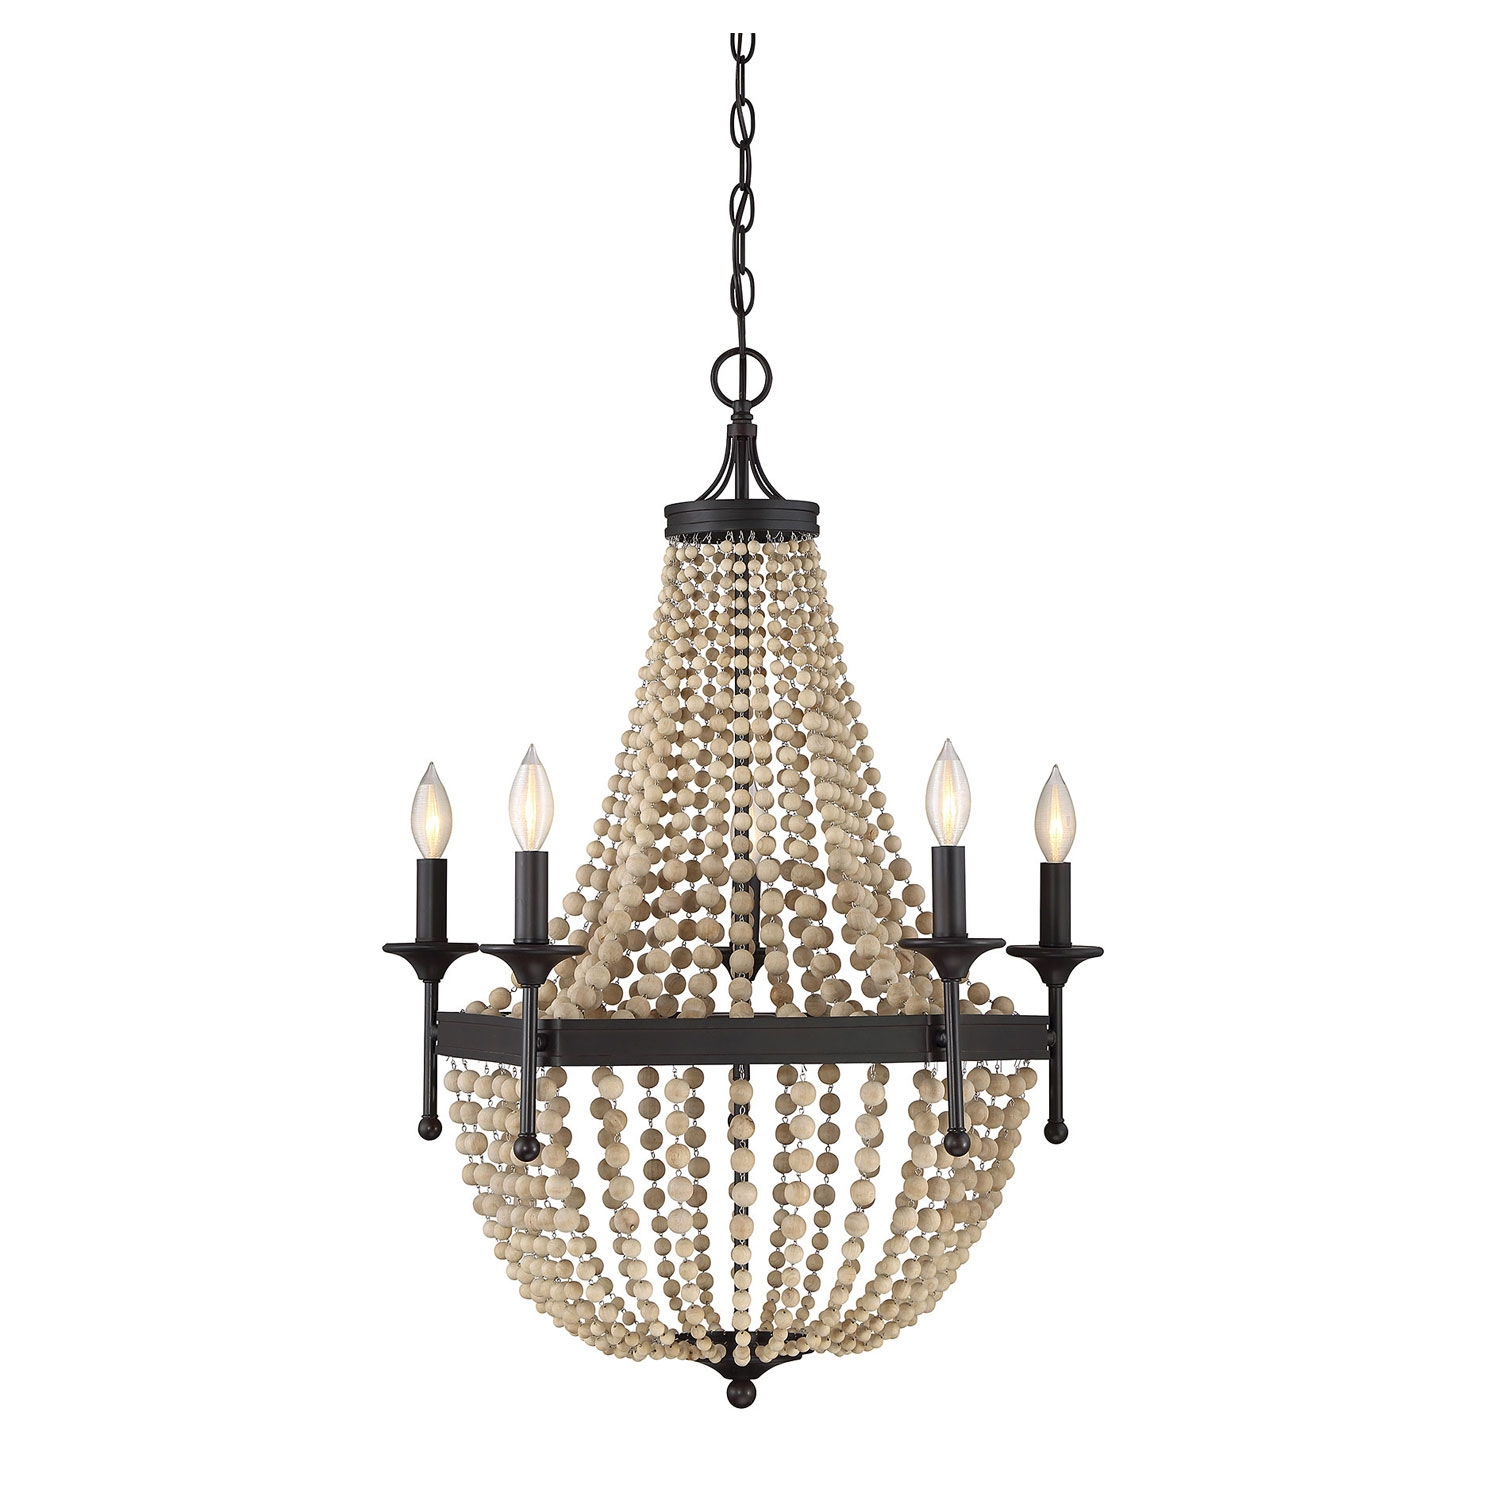 Bronze Oil Rubbed Chandeliers Bellacor Regarding Small Bronze Chandelier (Image 2 of 15)